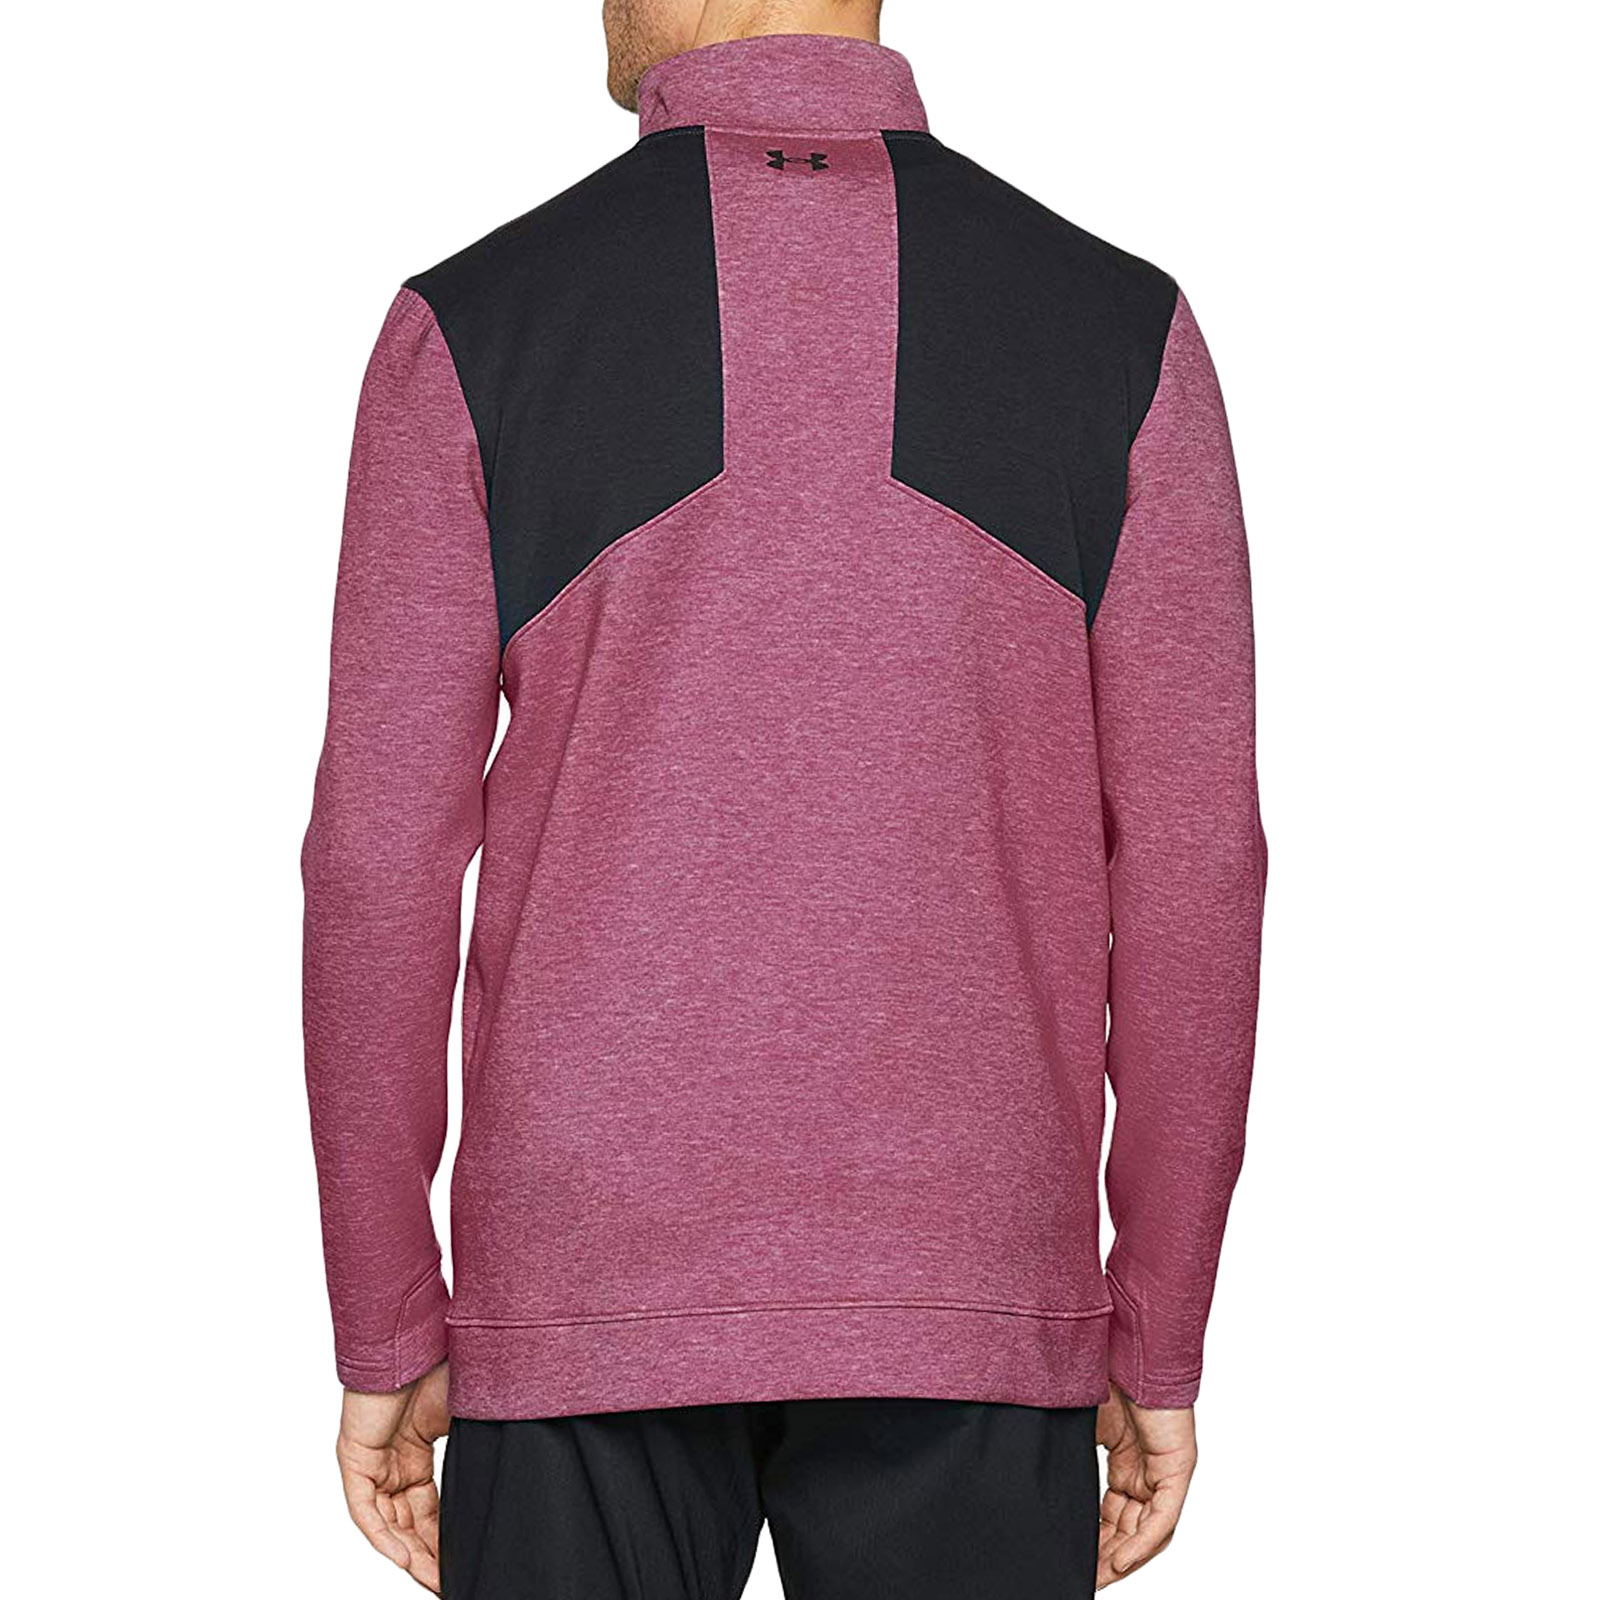 Under-Armour-Mens-Storm-Playoff-1-2-Zip-Golf-Pullover-Sweater-Sweatshirt-Top thumbnail 3